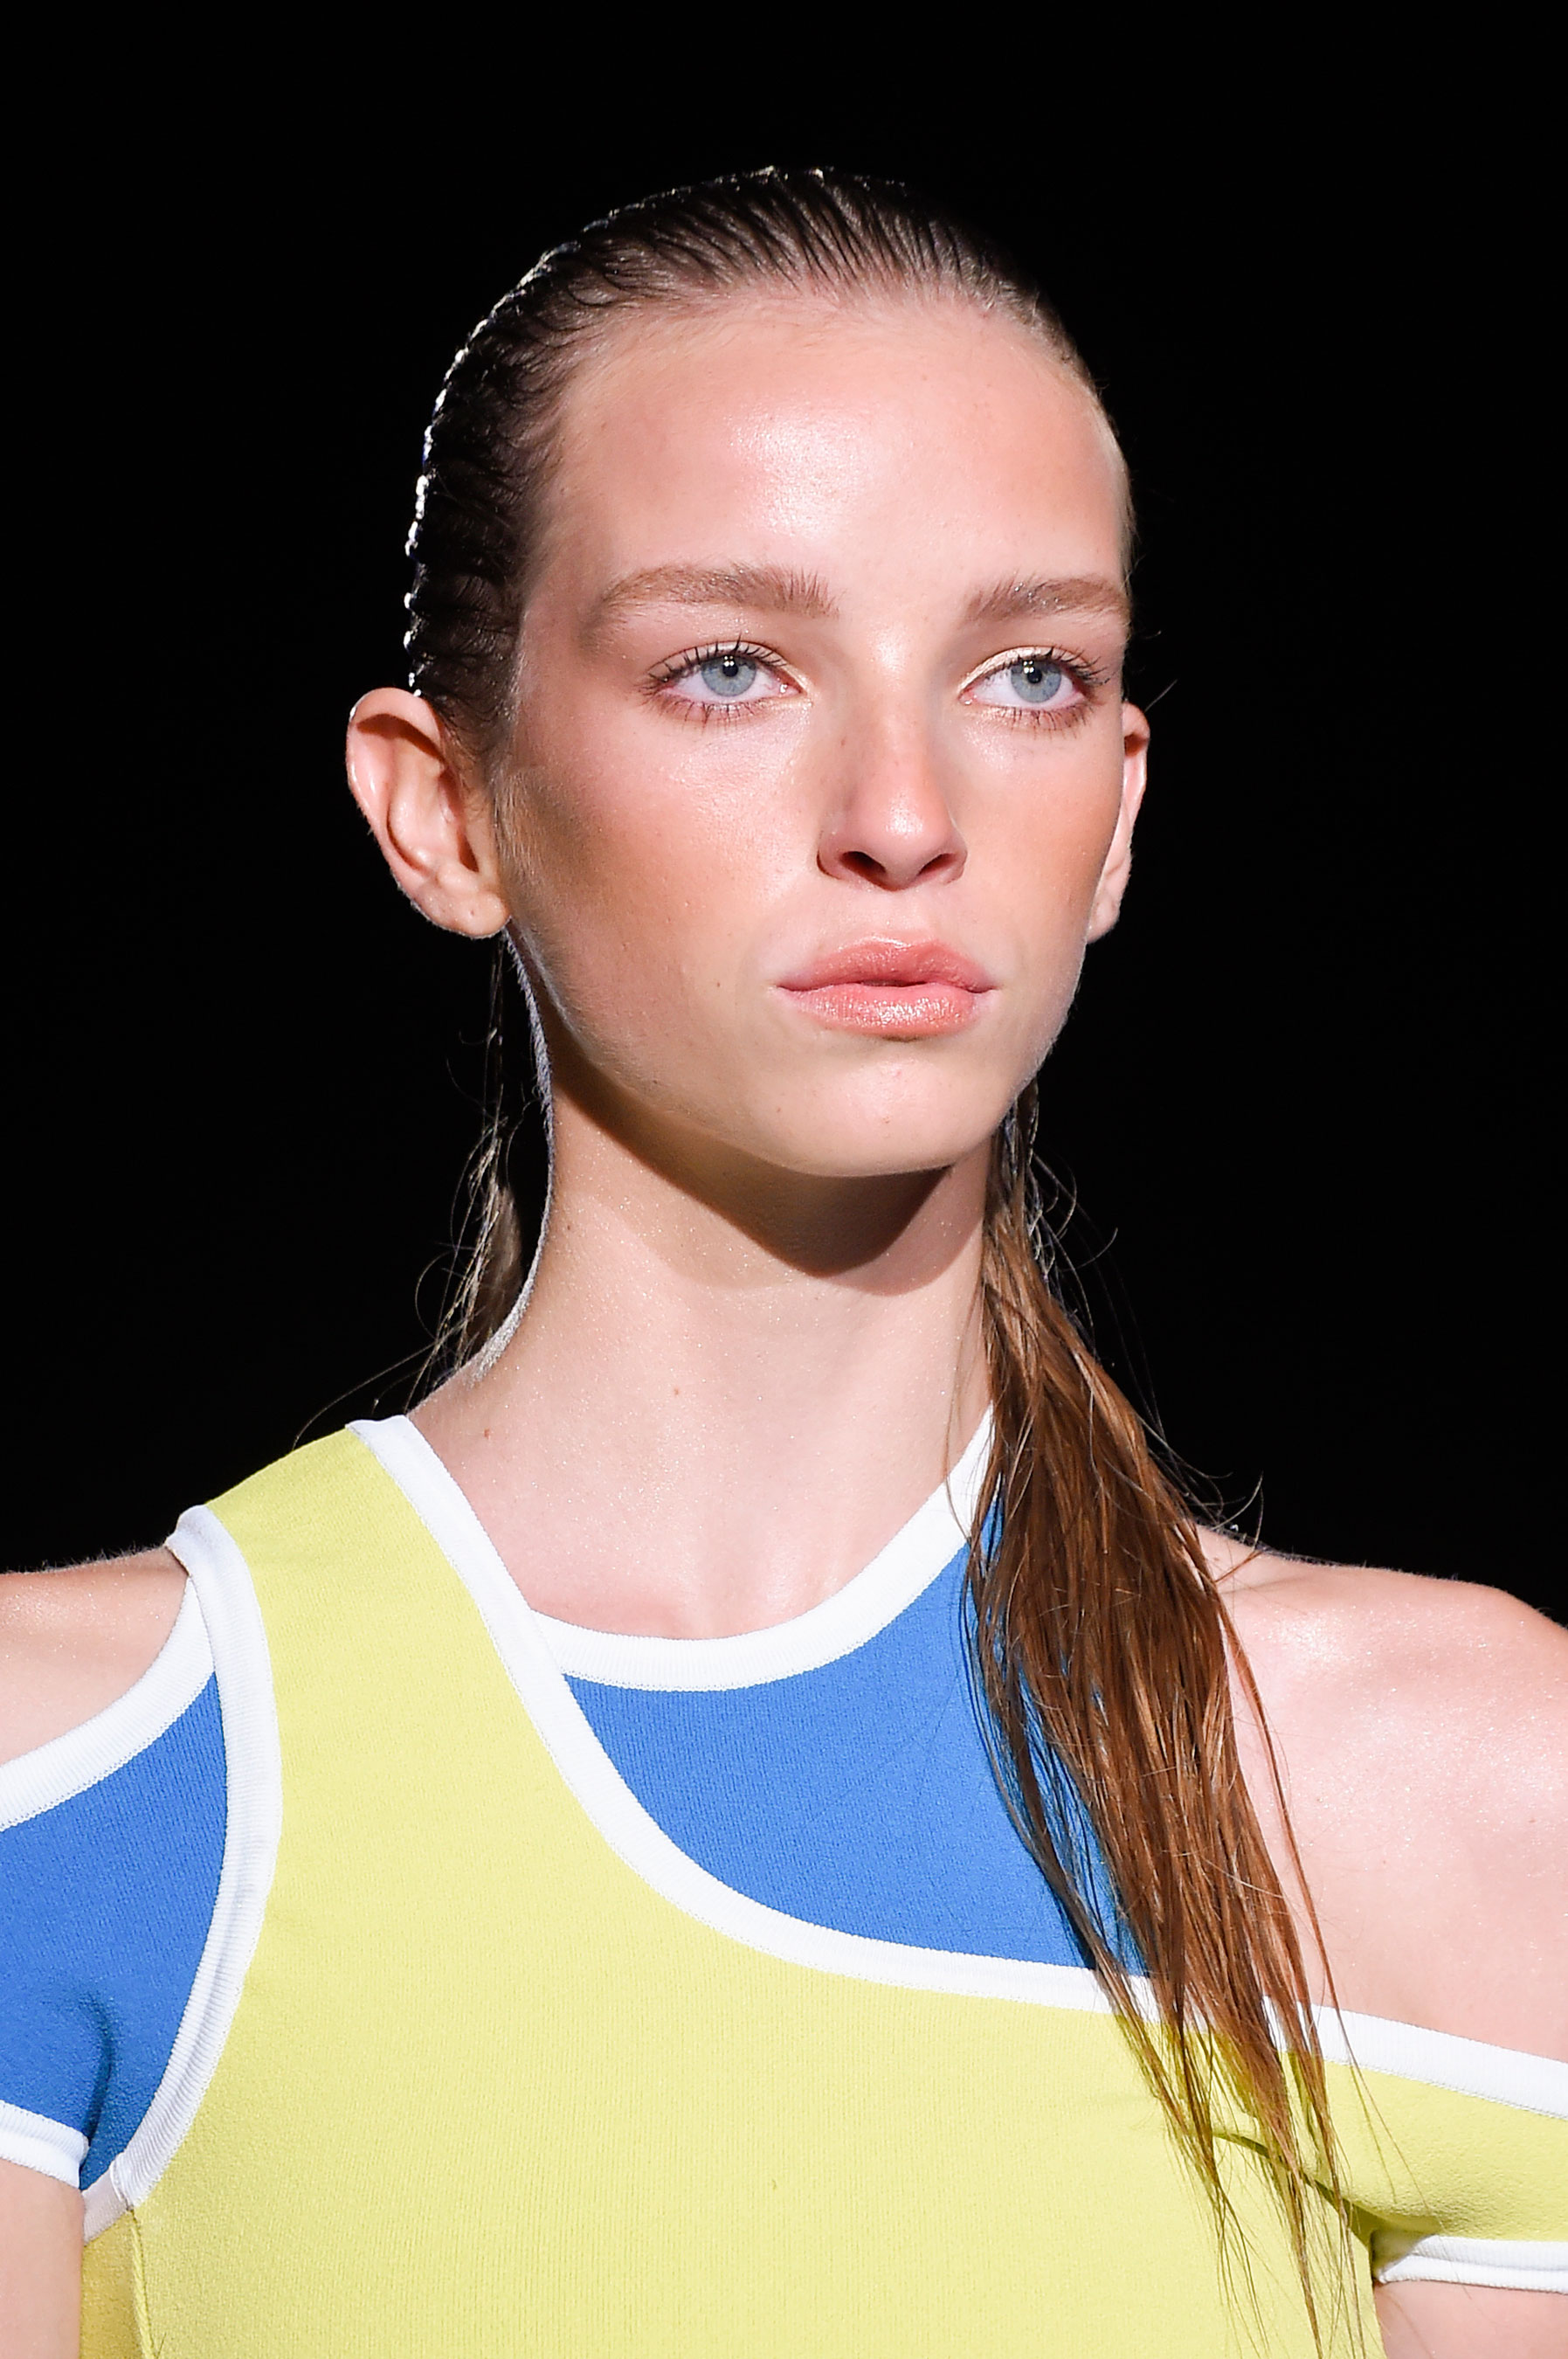 DSquared2-runway-beauty-spring-2016-fashion-show-the-impression-019